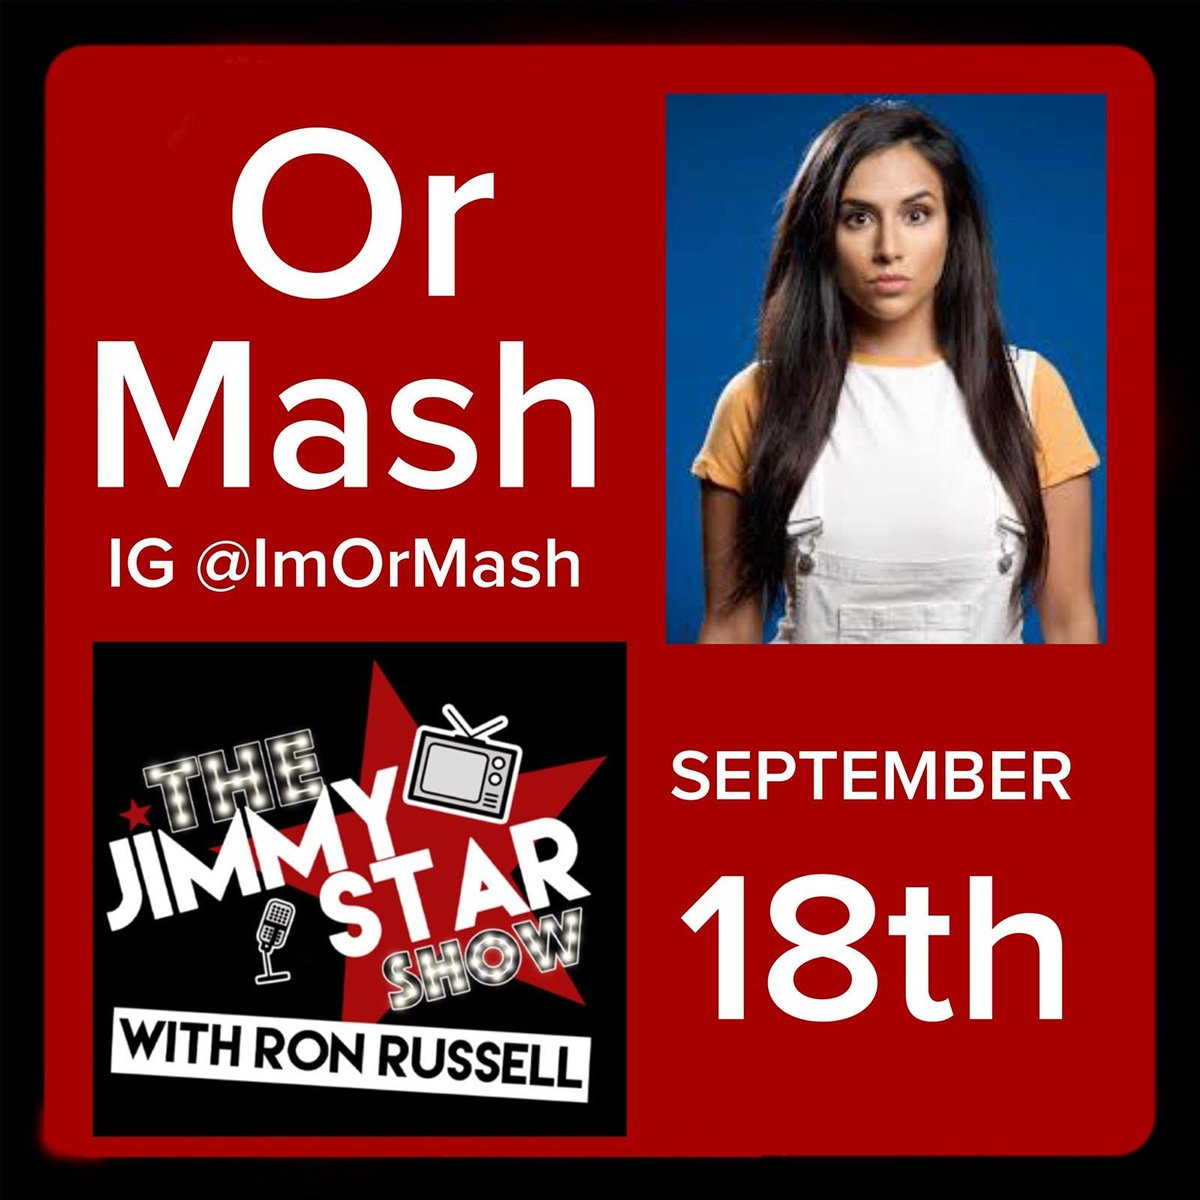 Tomorrow live on The Jimmy Star Show with cool outrageous man about town and my favorite co- host Ron Russell! Interviewing radio/📺 personality and one of the funniest comedians I know Or Mash! @Theehollydavids @ruthi_davis @DrJimmyStar @Jimmy_Ron_Fans @jimmystarshow